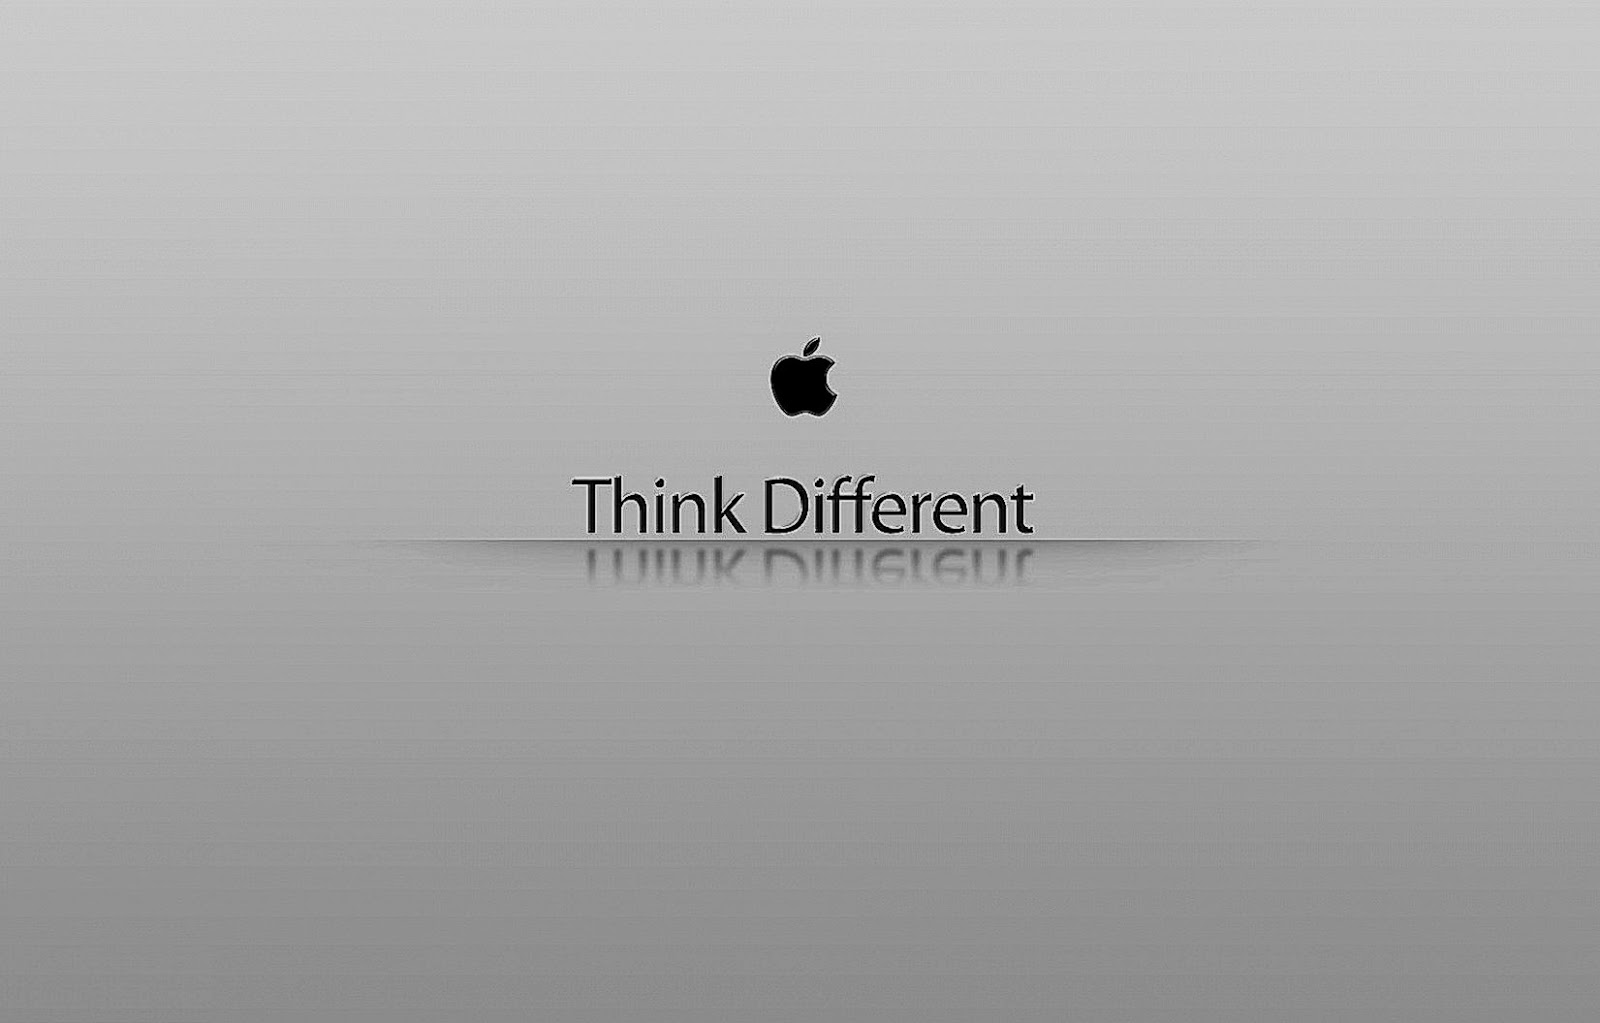 apple desktop wallpaper hd | cool hd wallpapers